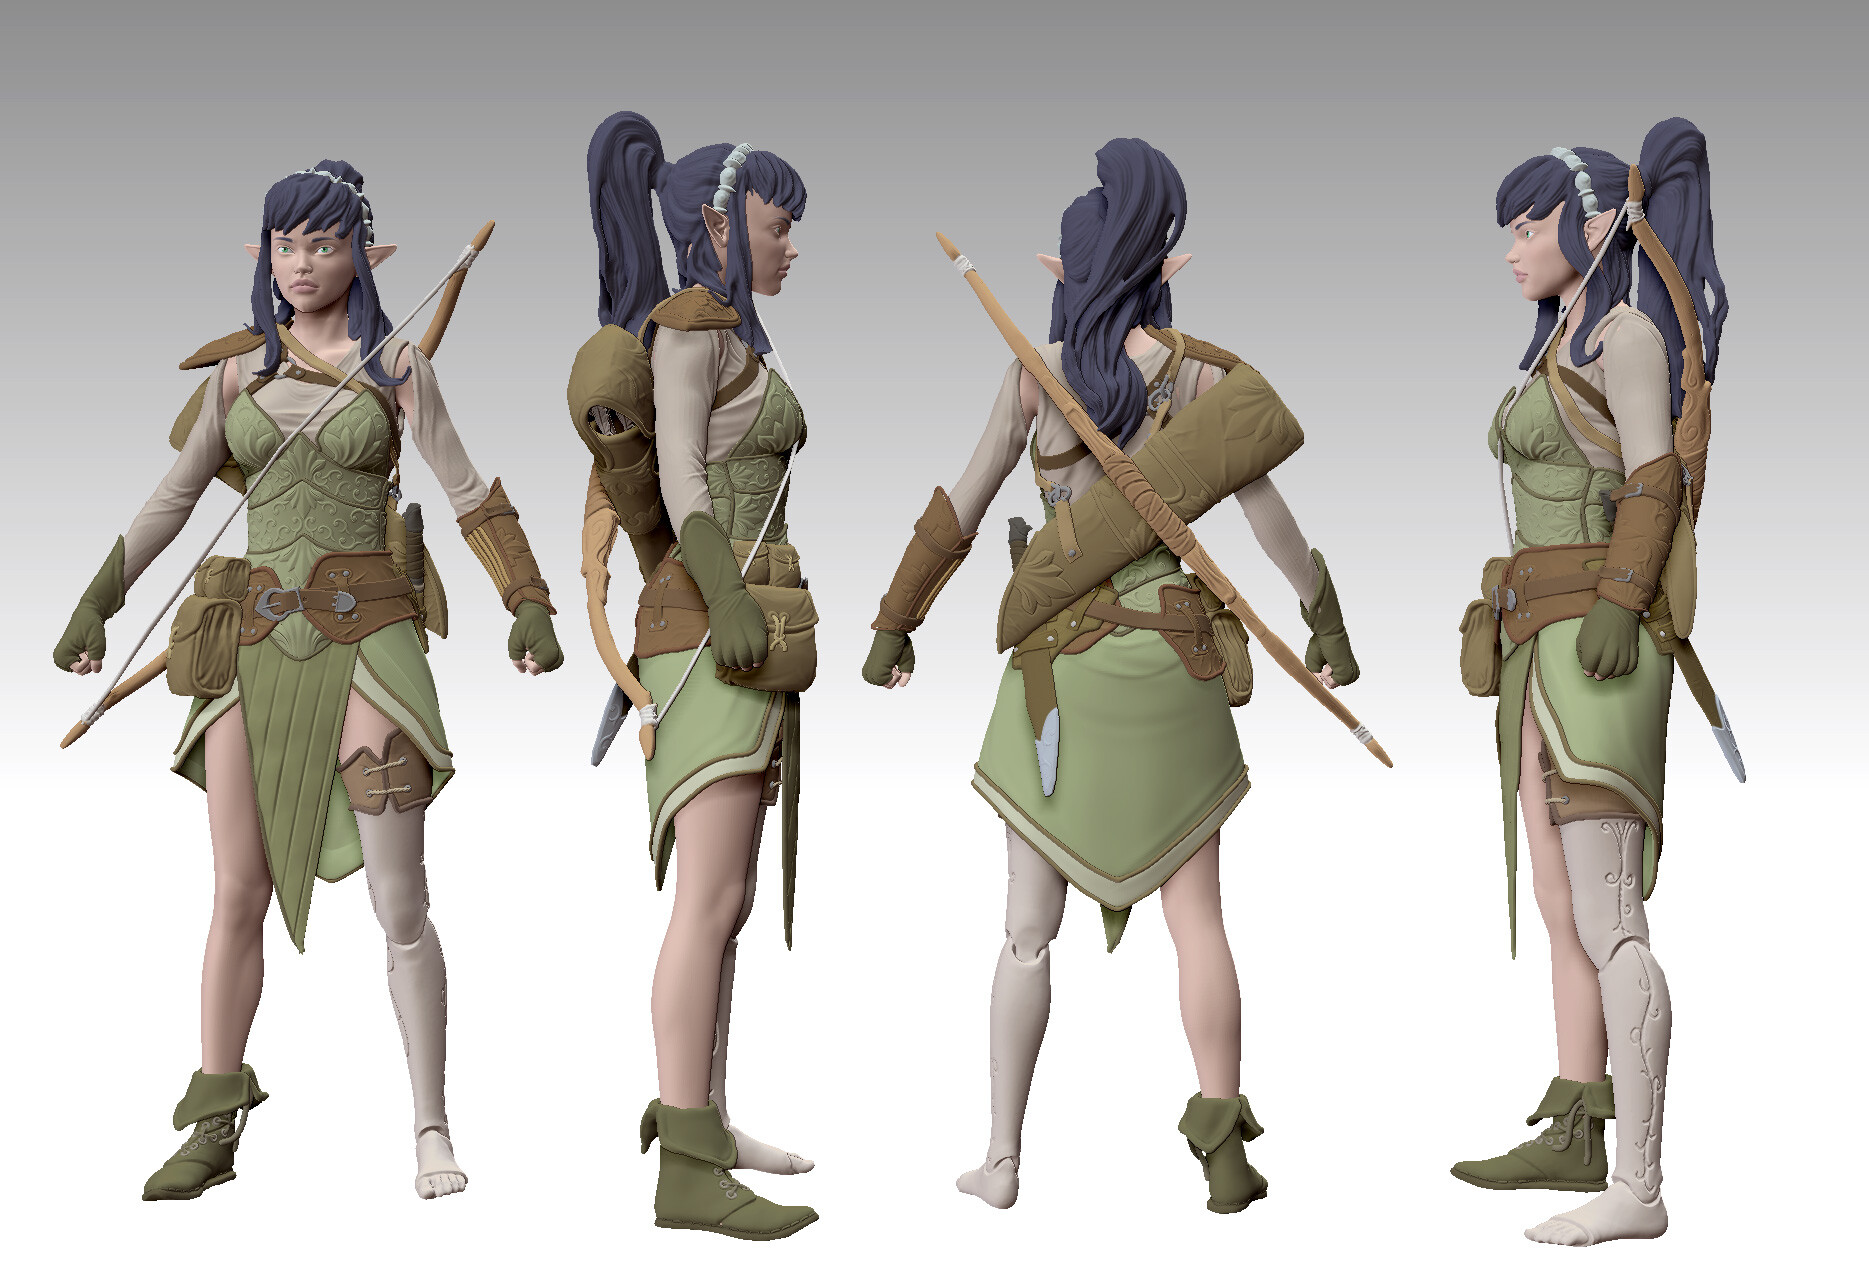 ZBrush preview render - character in neutral pose